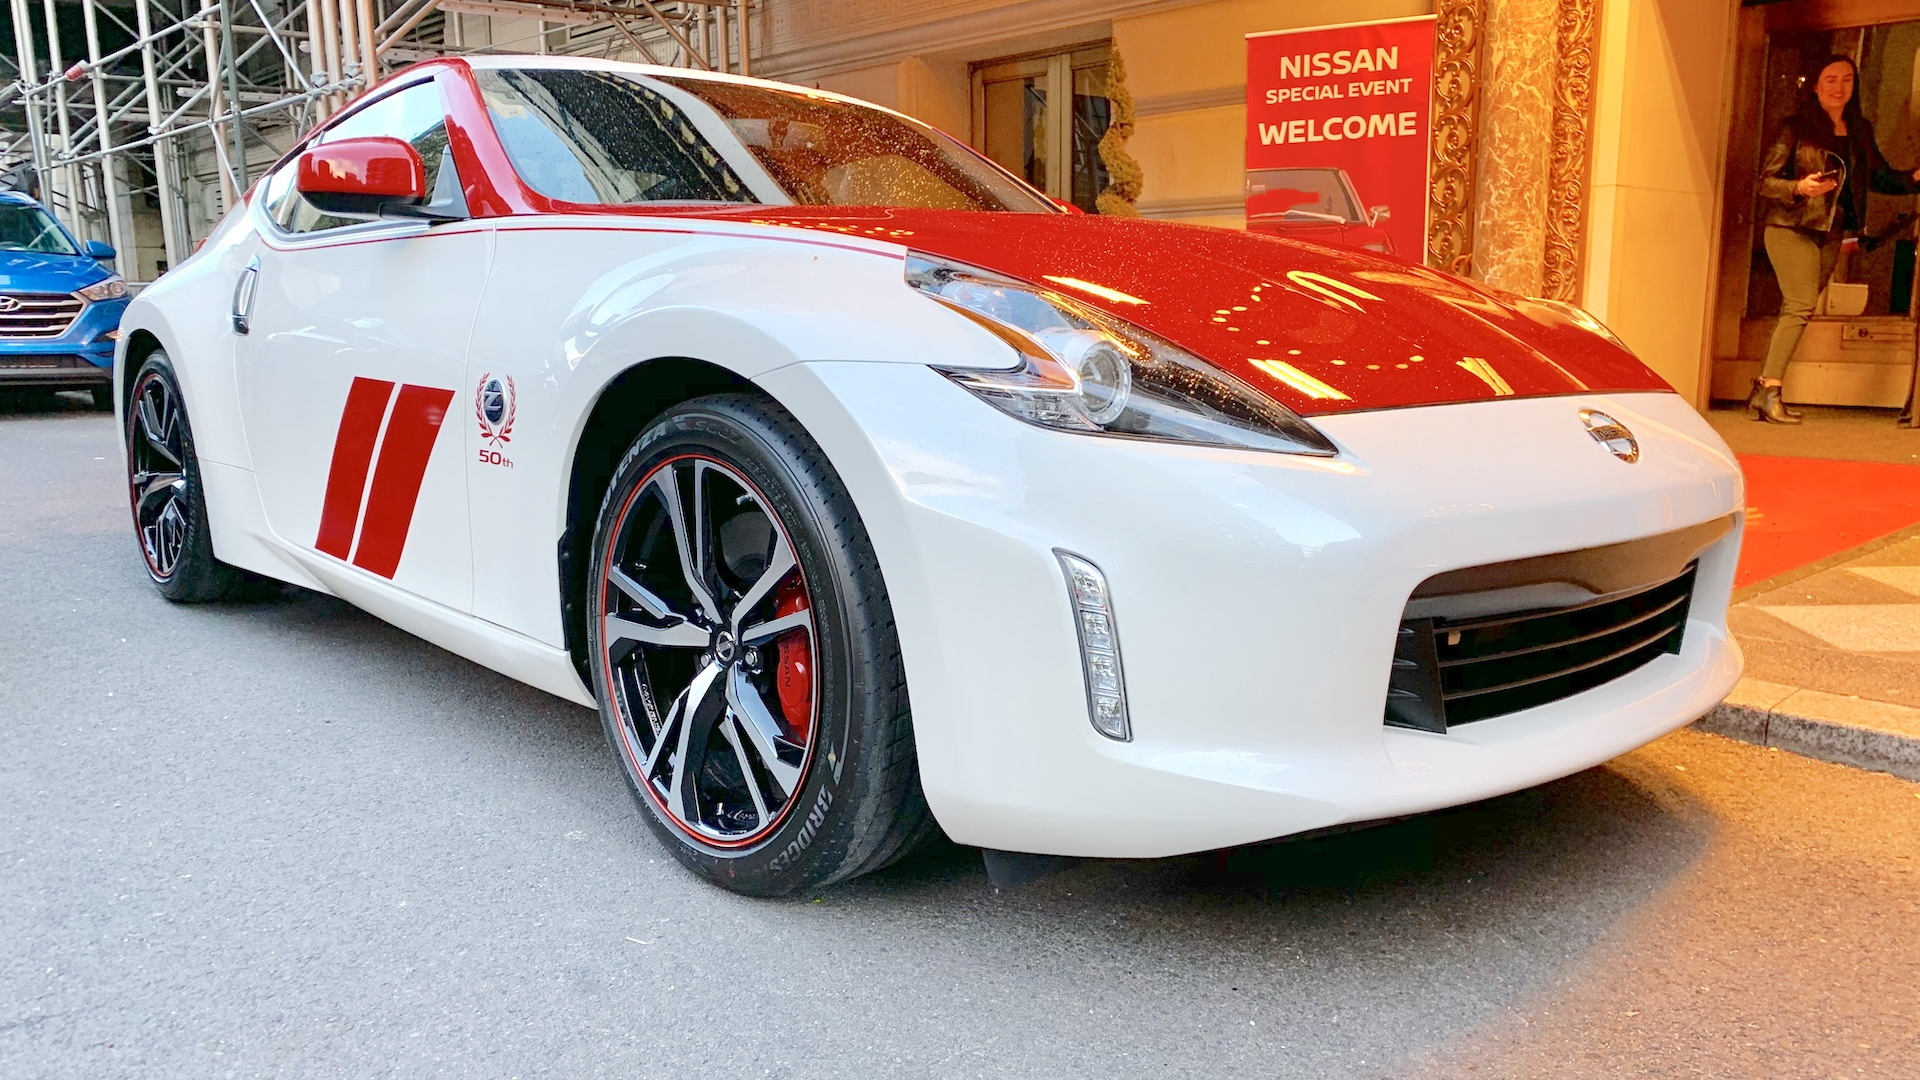 The Nissan GT-R Nismo Continues Into 2020 With Track-Focused Updates